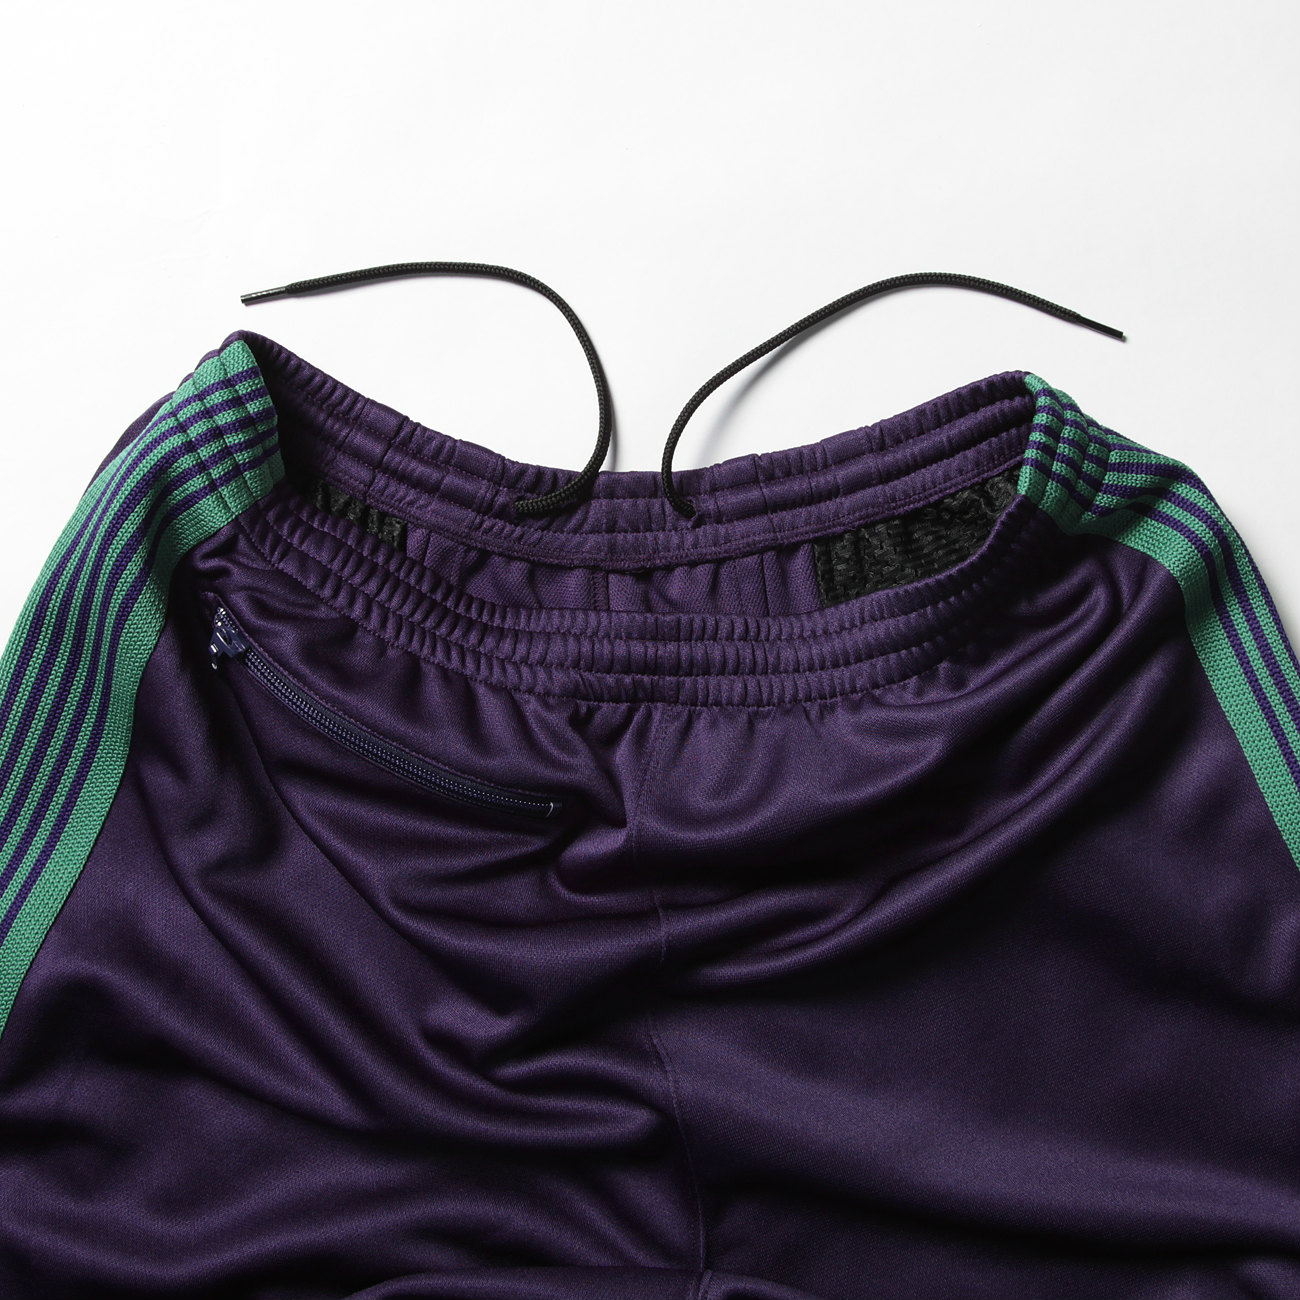 H.D. Track Pant - Poly Smooth - Eggplant ウエスト